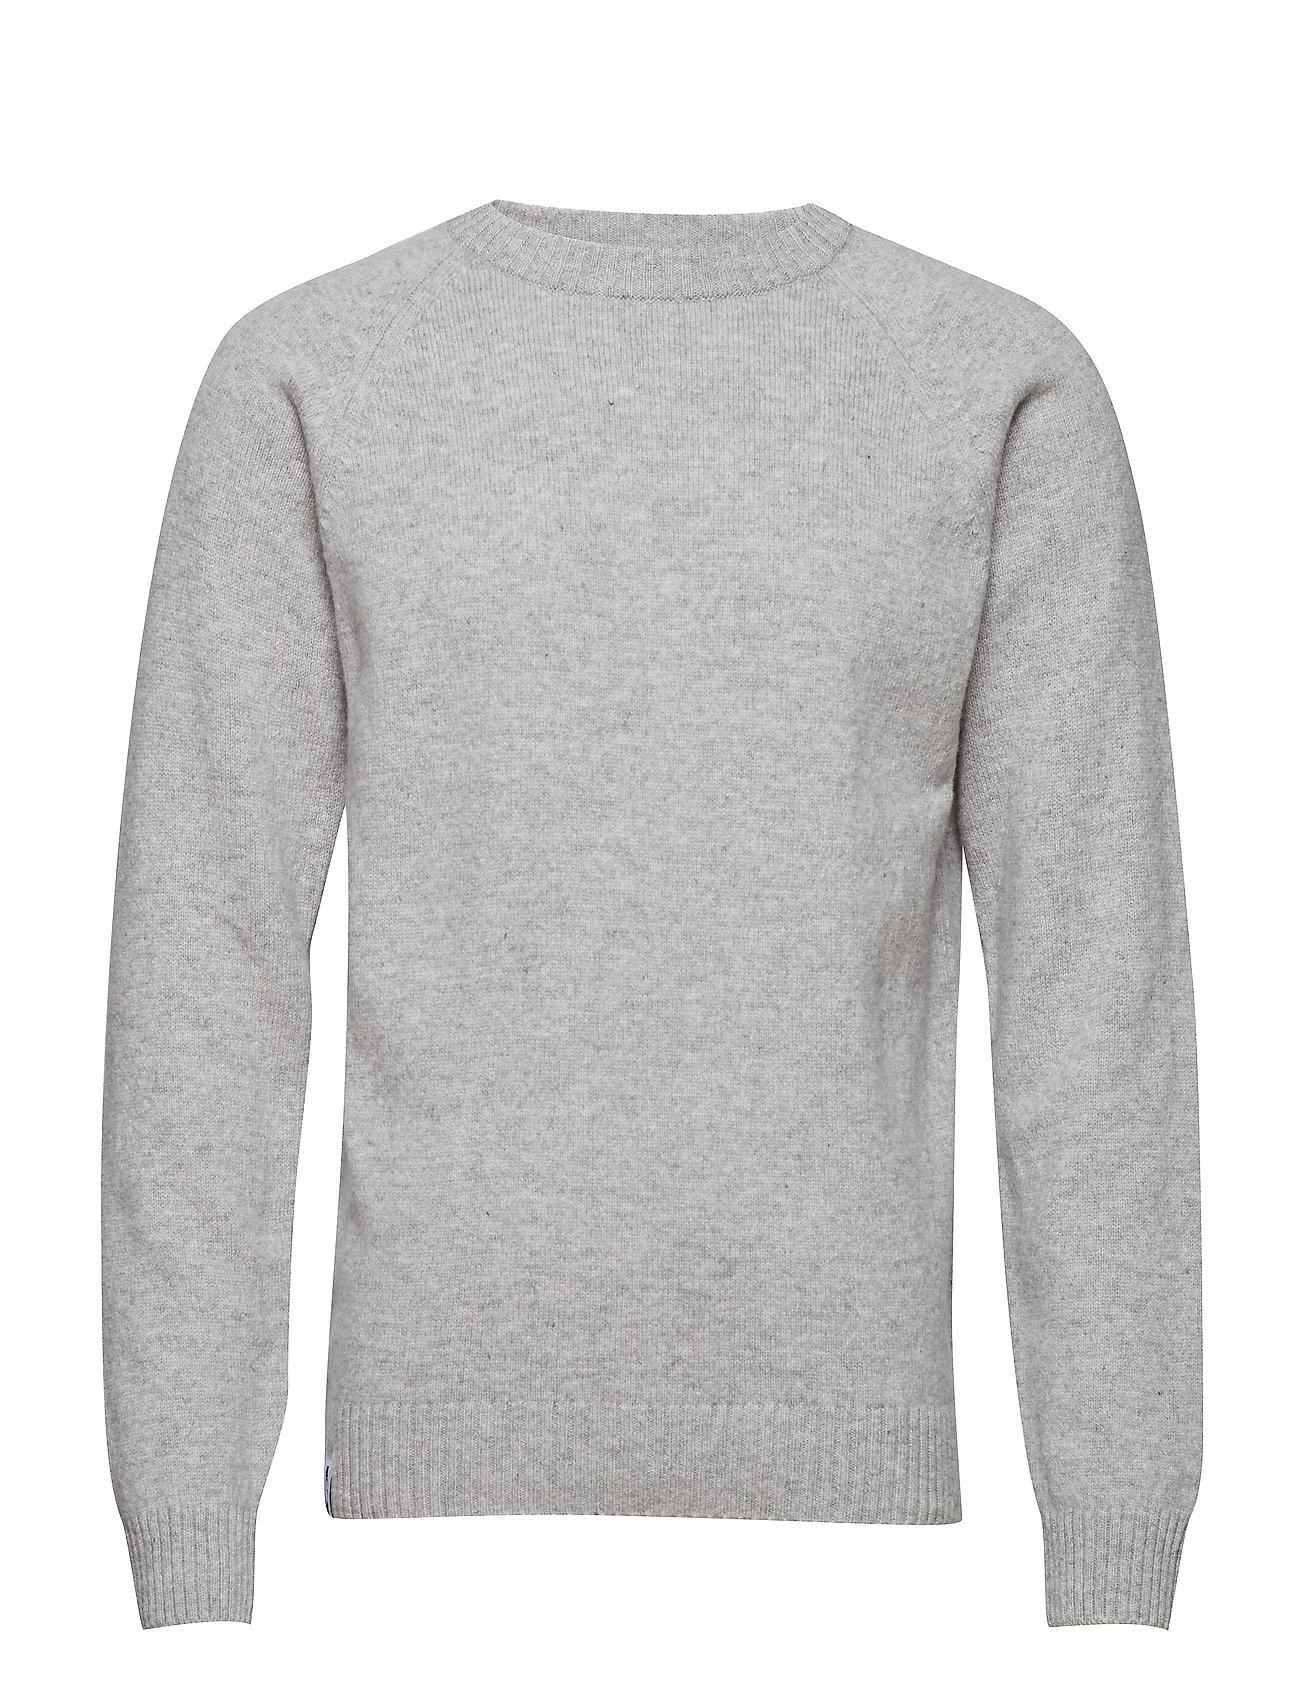 Makia KLOVHARU KNIT - LIGHT GREY